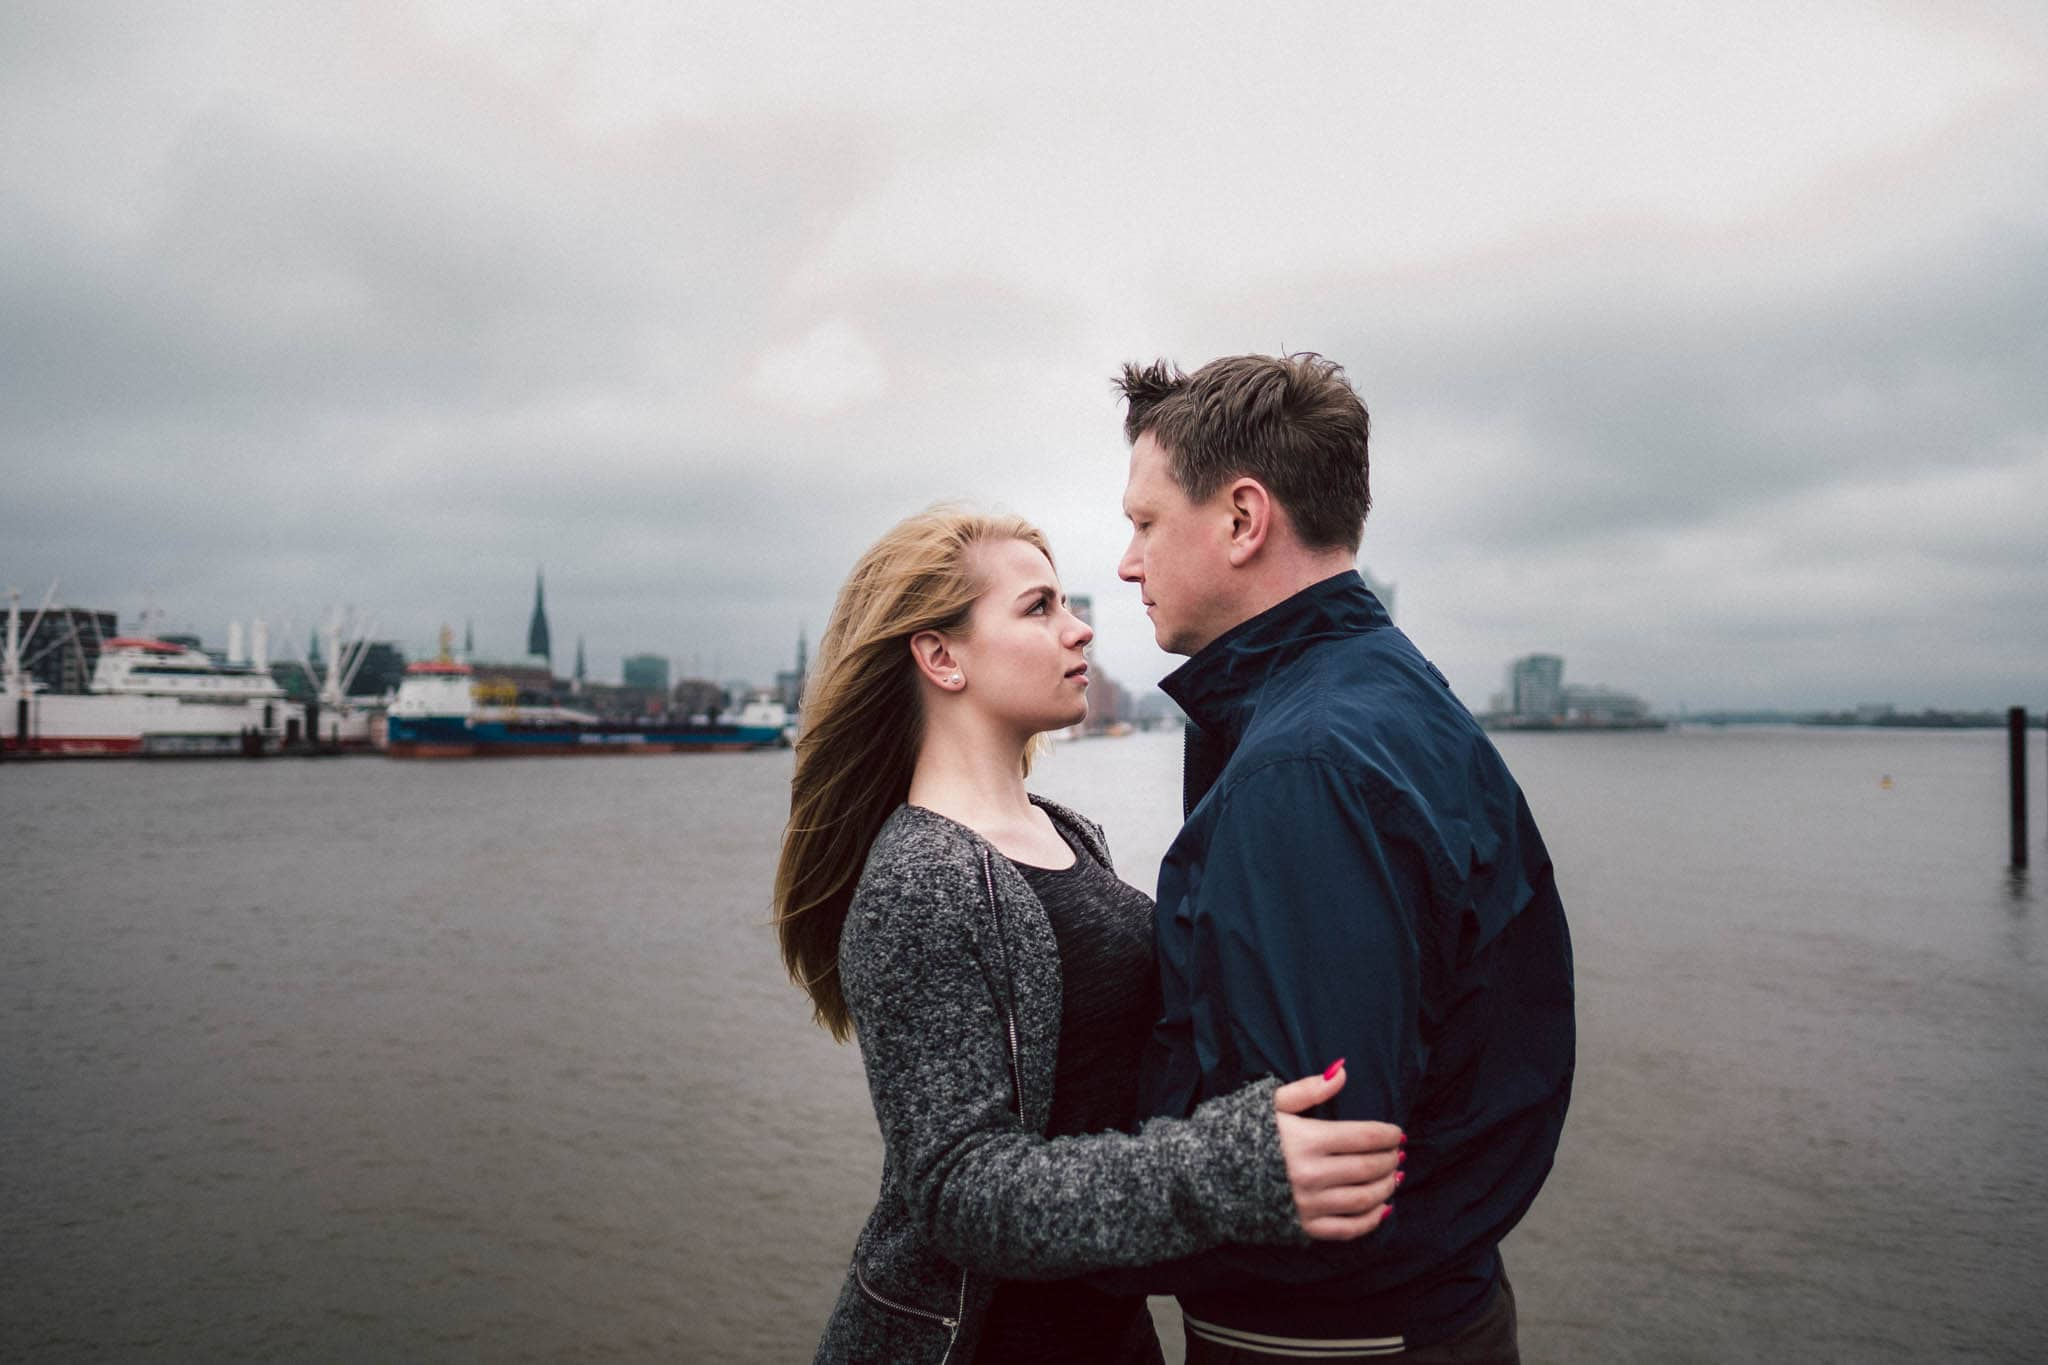 Engagementshooting, Hochzeitsfieber by Photo-Schomburg, Pärchenshoot, Hamburg, Elbe, Hamburger Hafen, Hochzeitsfotograf, Wedding, Coupleshoot, Hochzeitsfotografie-18